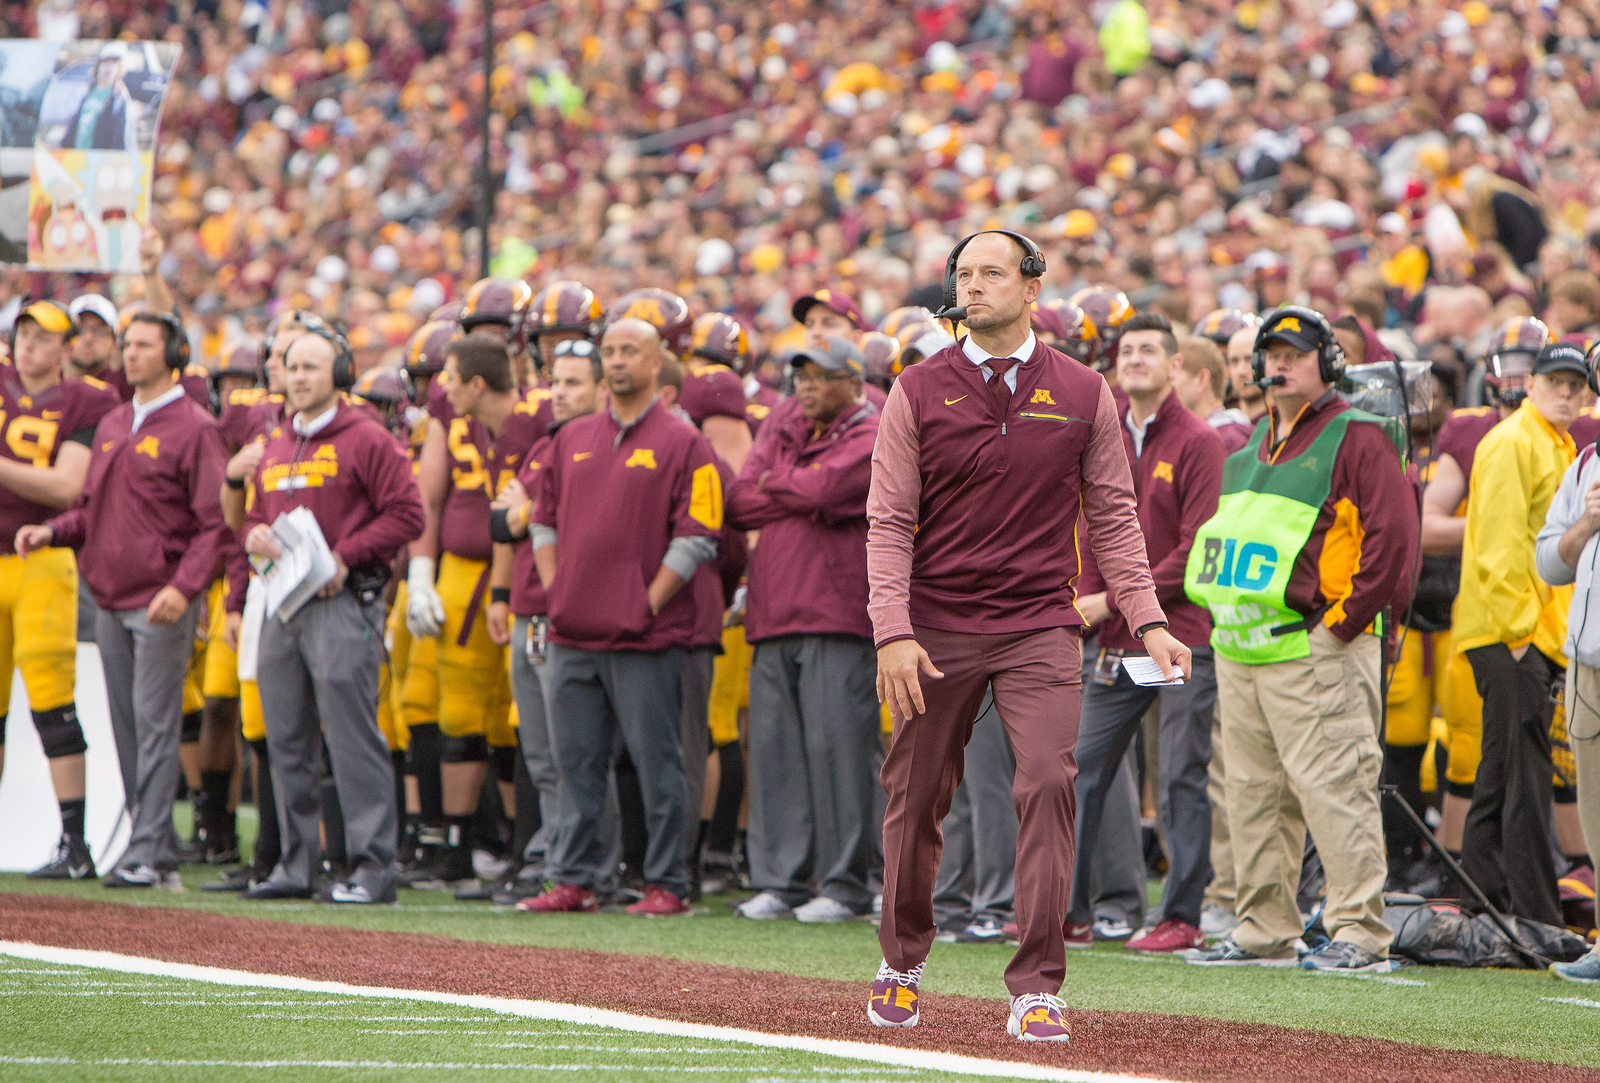 Minnesota Golden Gophers head coach P.J. Fleck at homecoming 2017 - Minnesota Gophers vs. Illinois Illini on October 21, 2017 at TCF Bank Stadium in Minneapolis, Minn. Photo credit: Matt Blewett/The Minnesota Sports Report